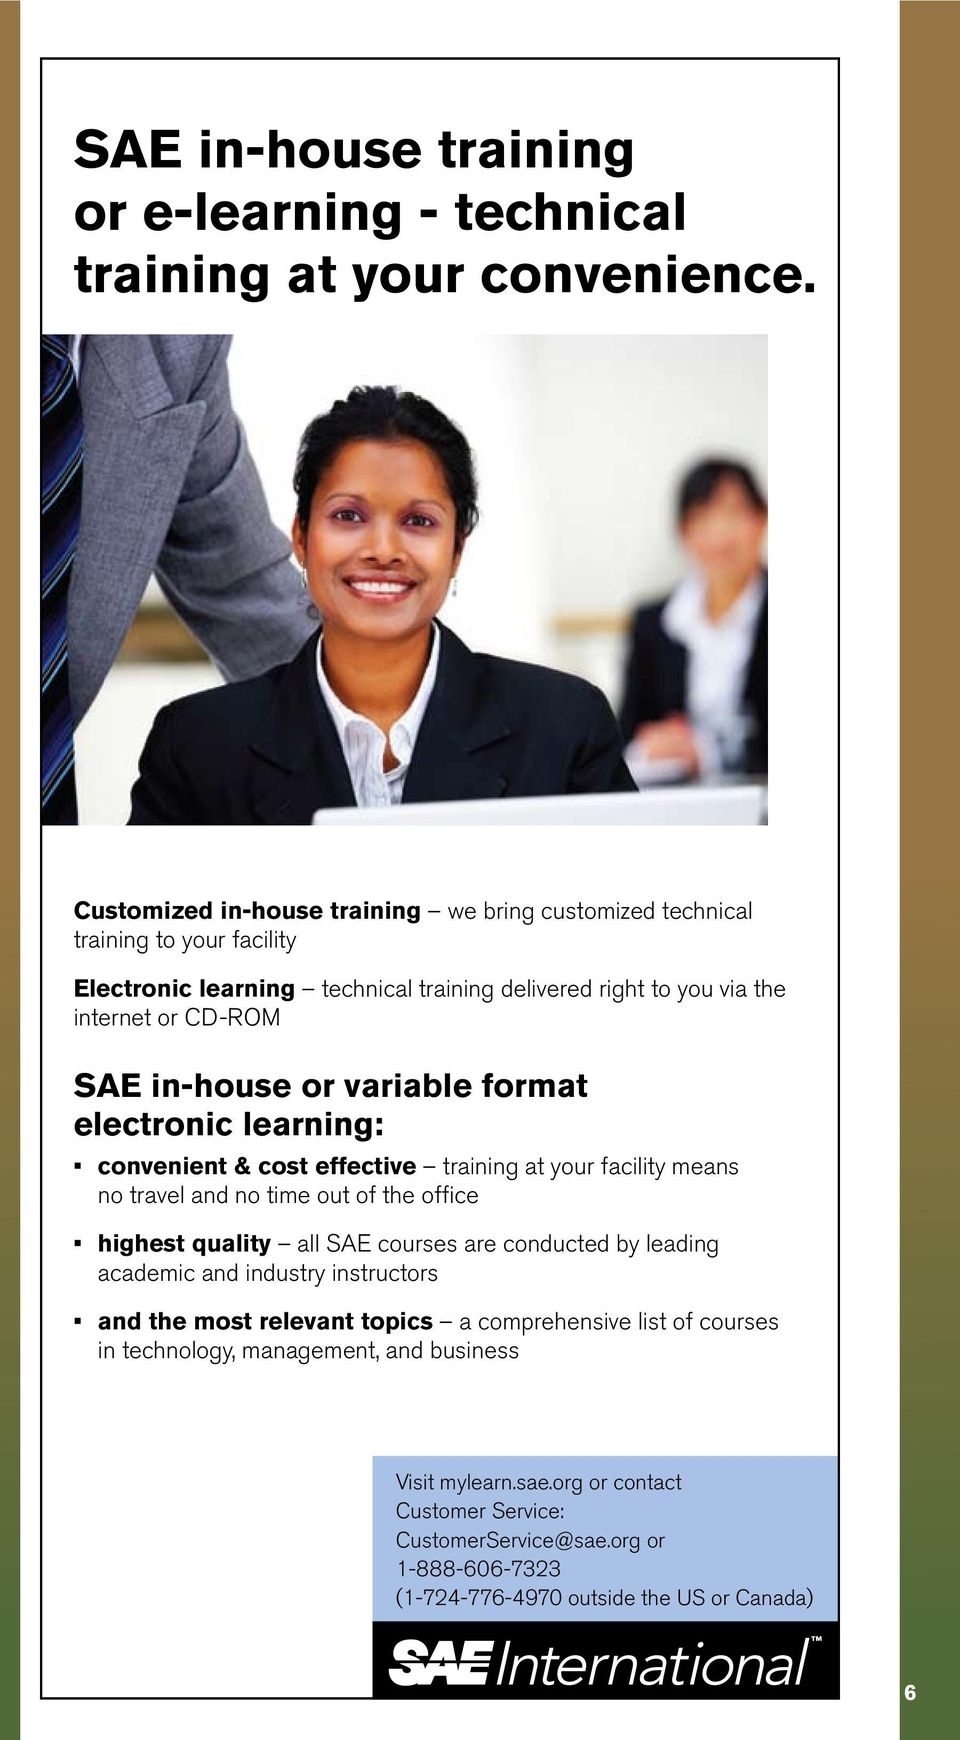 or CD-ROM SAE in-house or variable format electronic learning: training at your facility means no travel and no time out of the office all SAE courses are conducted